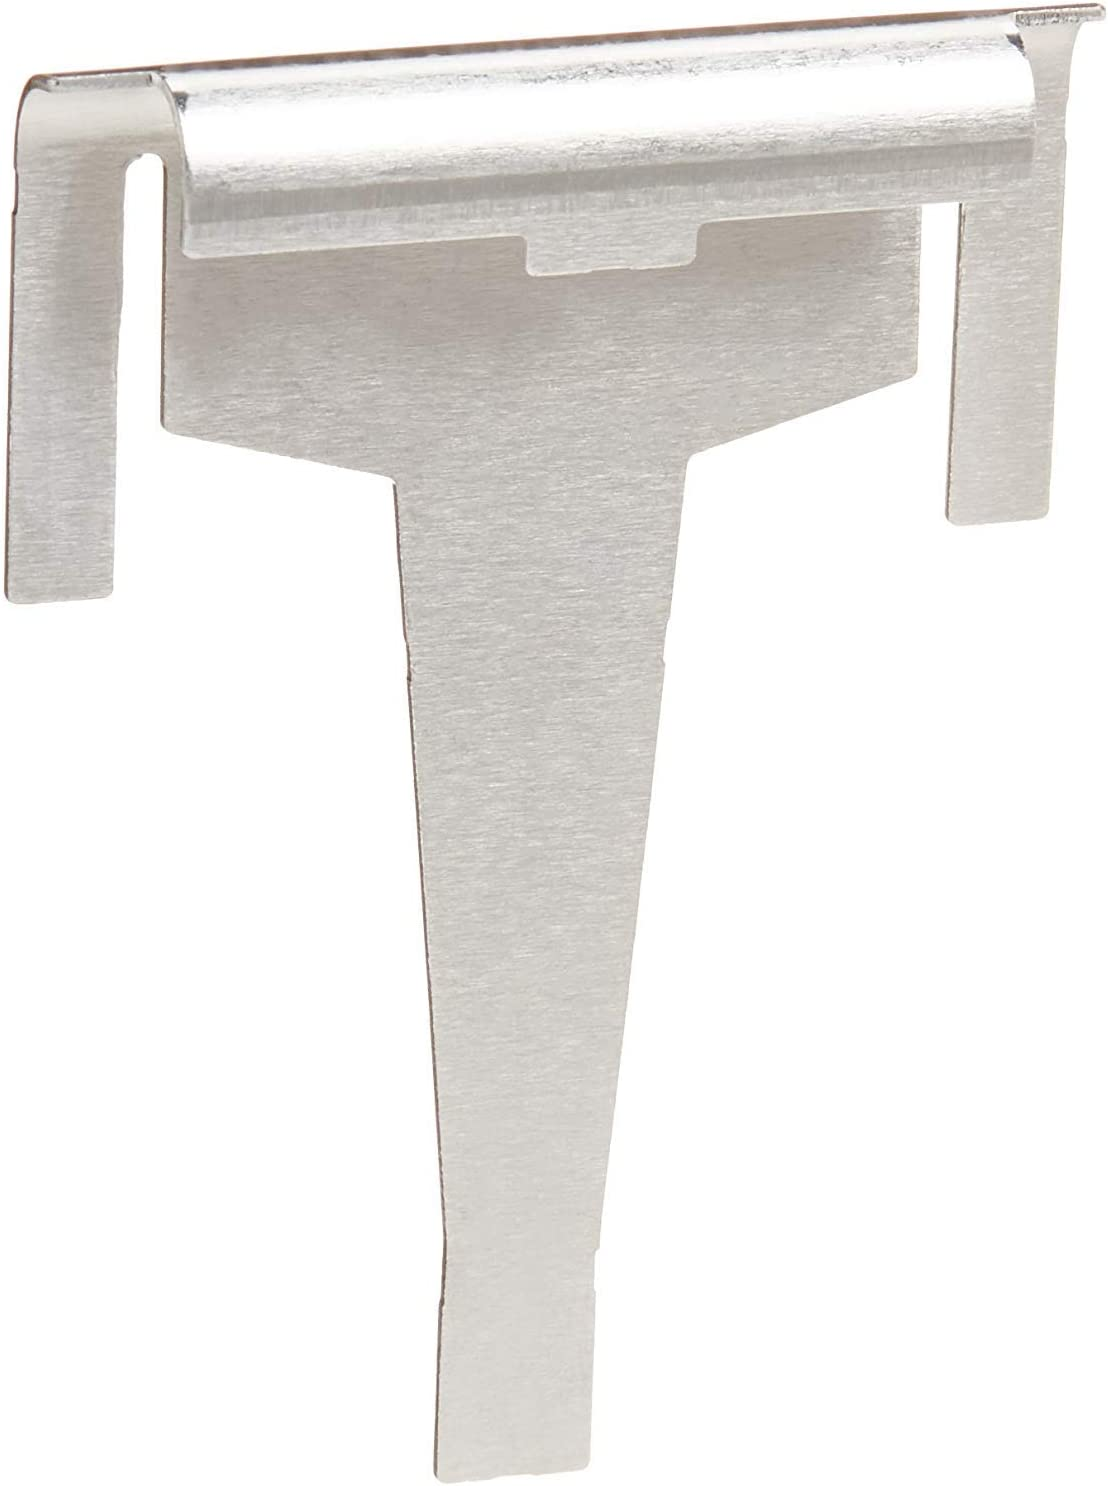 What's Up? Authorized Factory Replacement DA61-06796A Clip Drain Samsung Compatible with DA61-06796A, AP5579885, 2683162